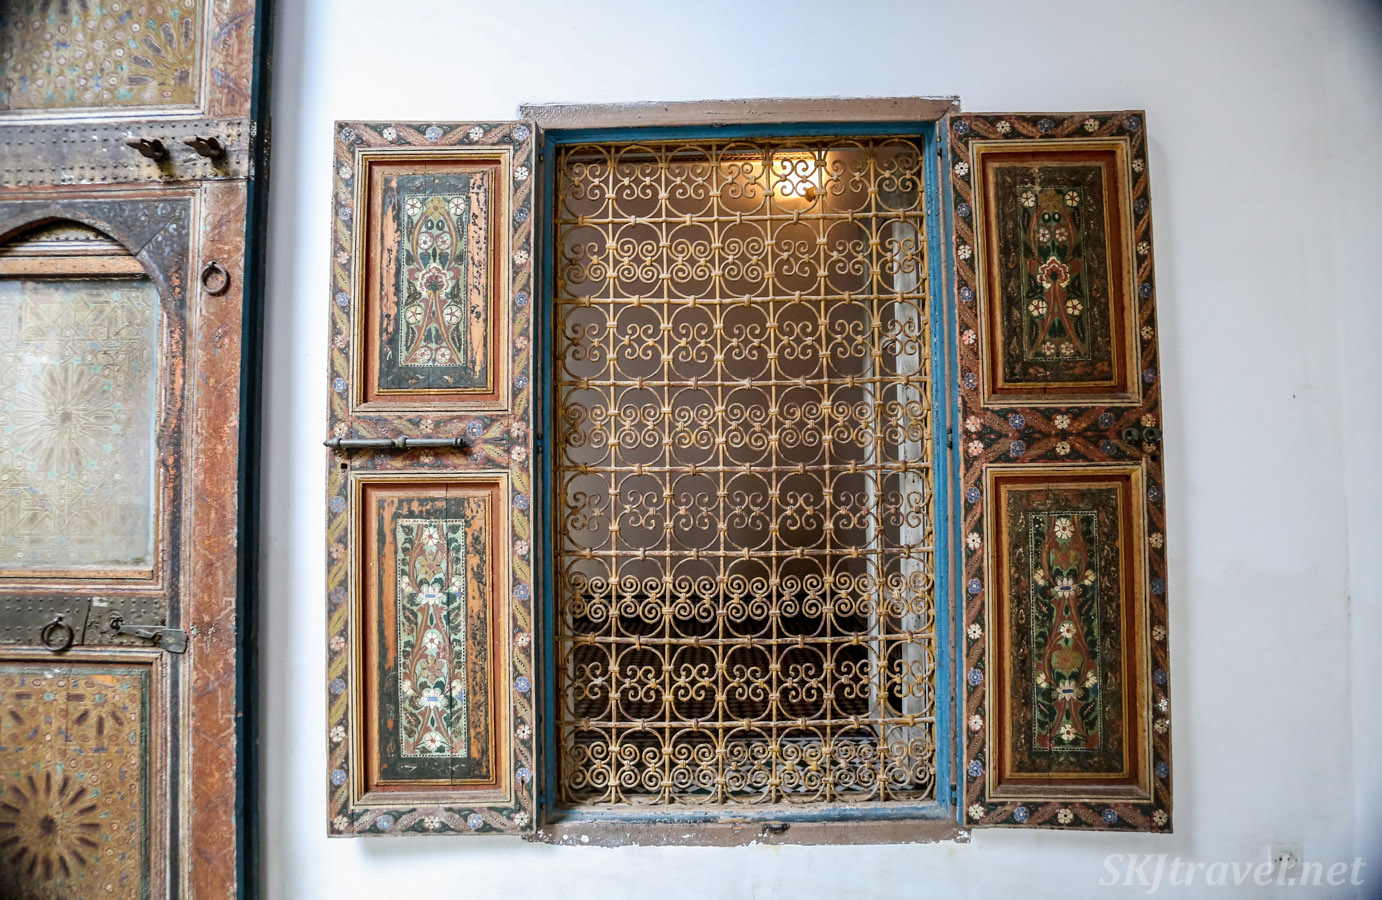 Window with painted wooden shutters and fancy grate. Bahia Palace, Marrakech, Morocco. UNESCO World Heritage.